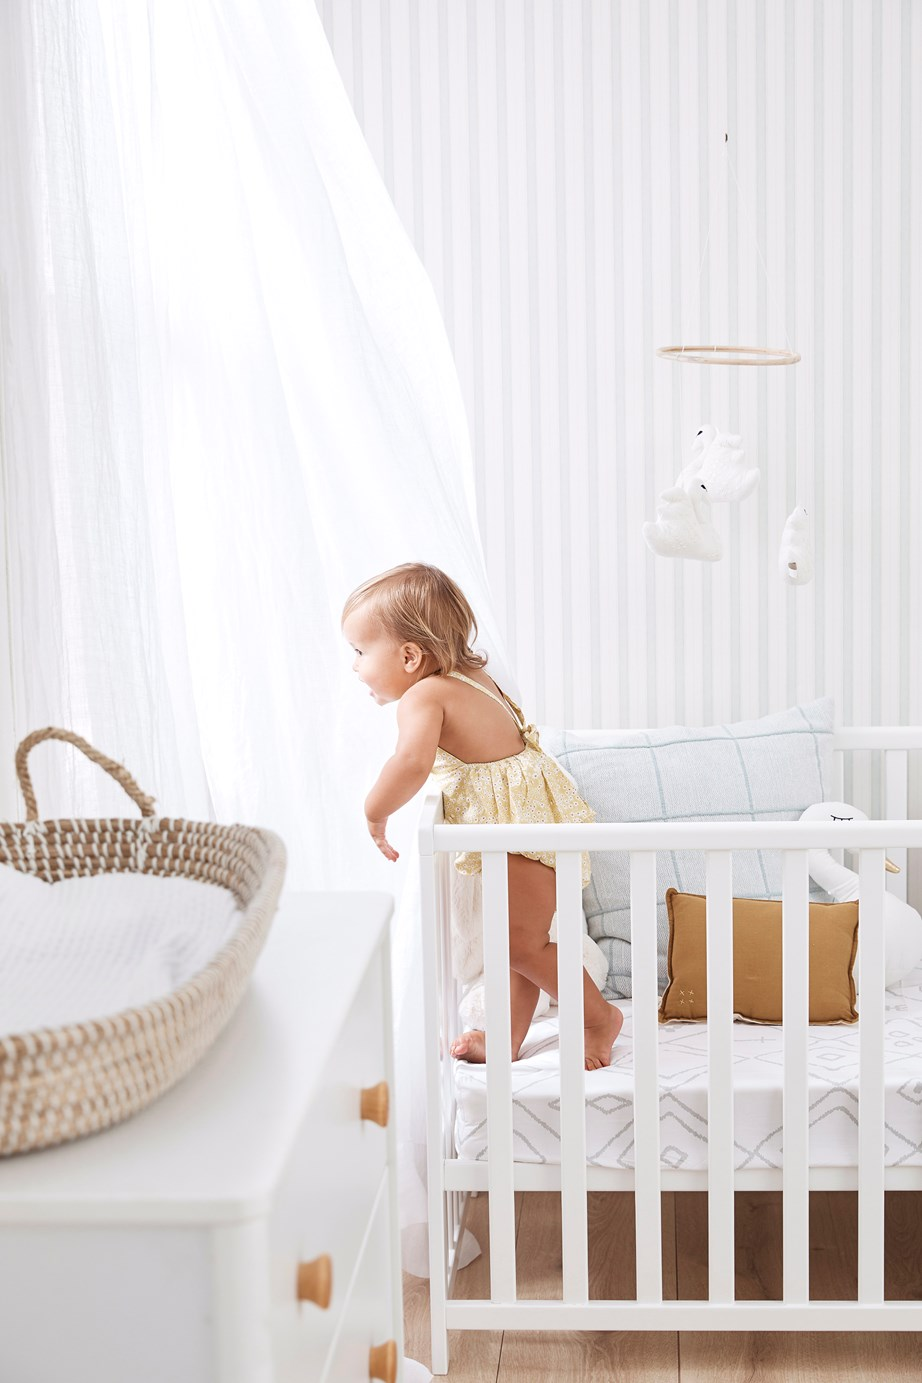 Cover your basics first - cot, change table, storage - and add decorative touches over time.